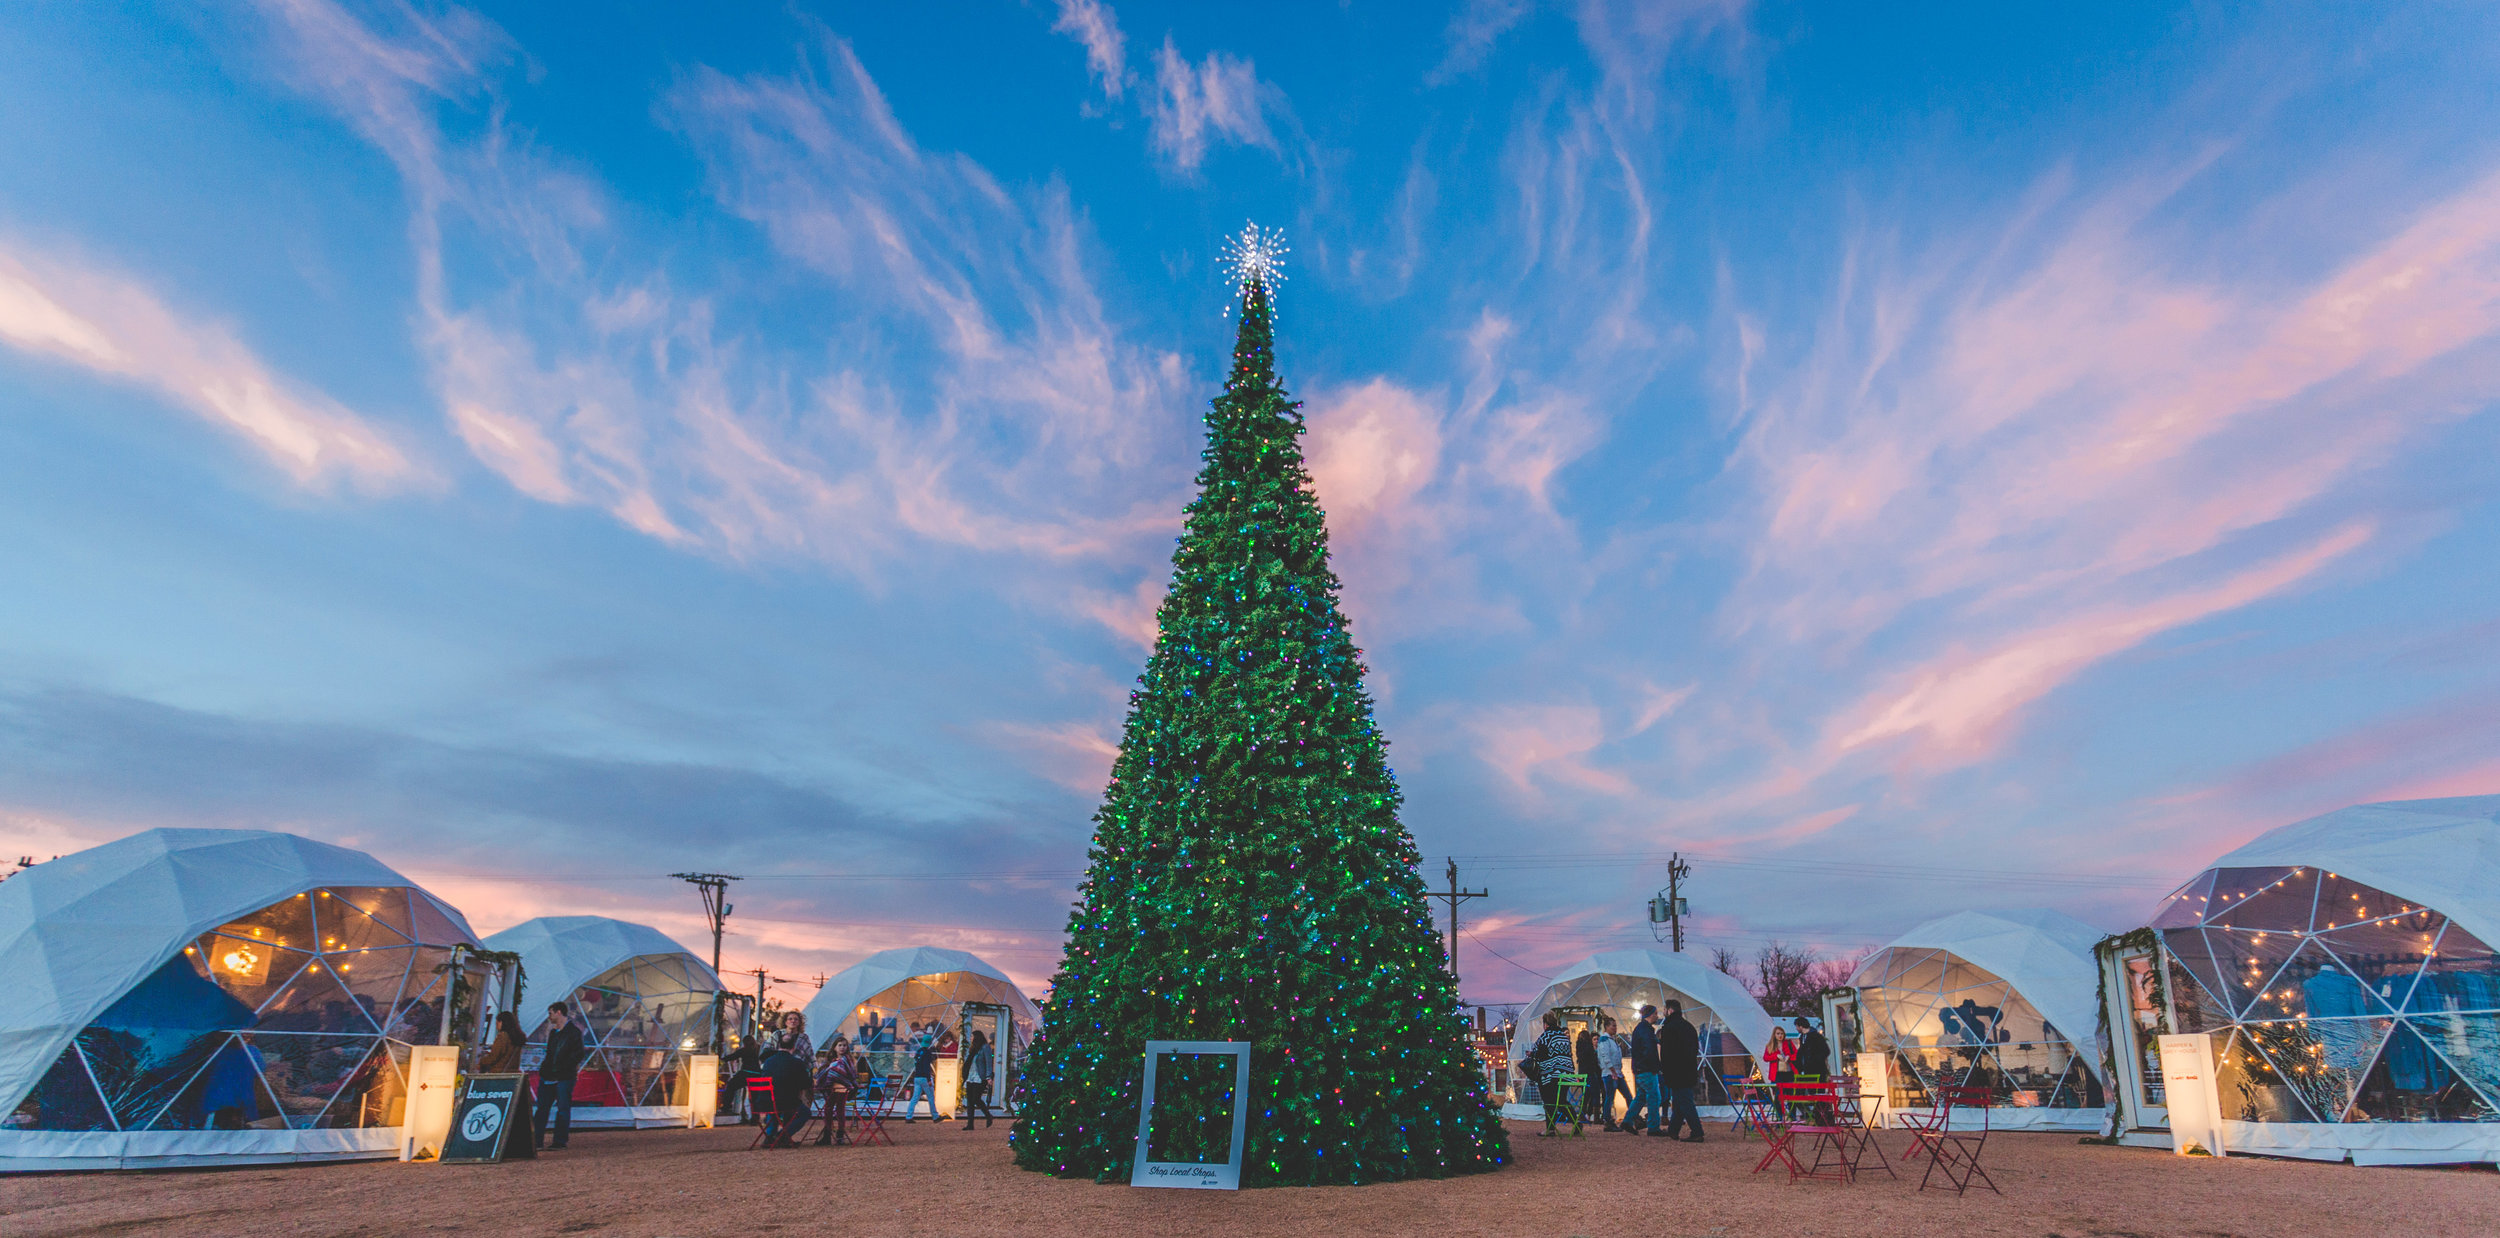 "The Holiday Pop-Up Shops were named Best Holiday Market in Oklahoma by Food and Wine Magazine in 2017.    ""Let's just say you're the kind of person who'd like to shop inside a (plastic) igloo. Then this holiday market is the one for you. Some 35 rotating vendors set up shop in geodesic domes, which look like igloos, to sell their wares. You can also purchase your Christmas tree here."""